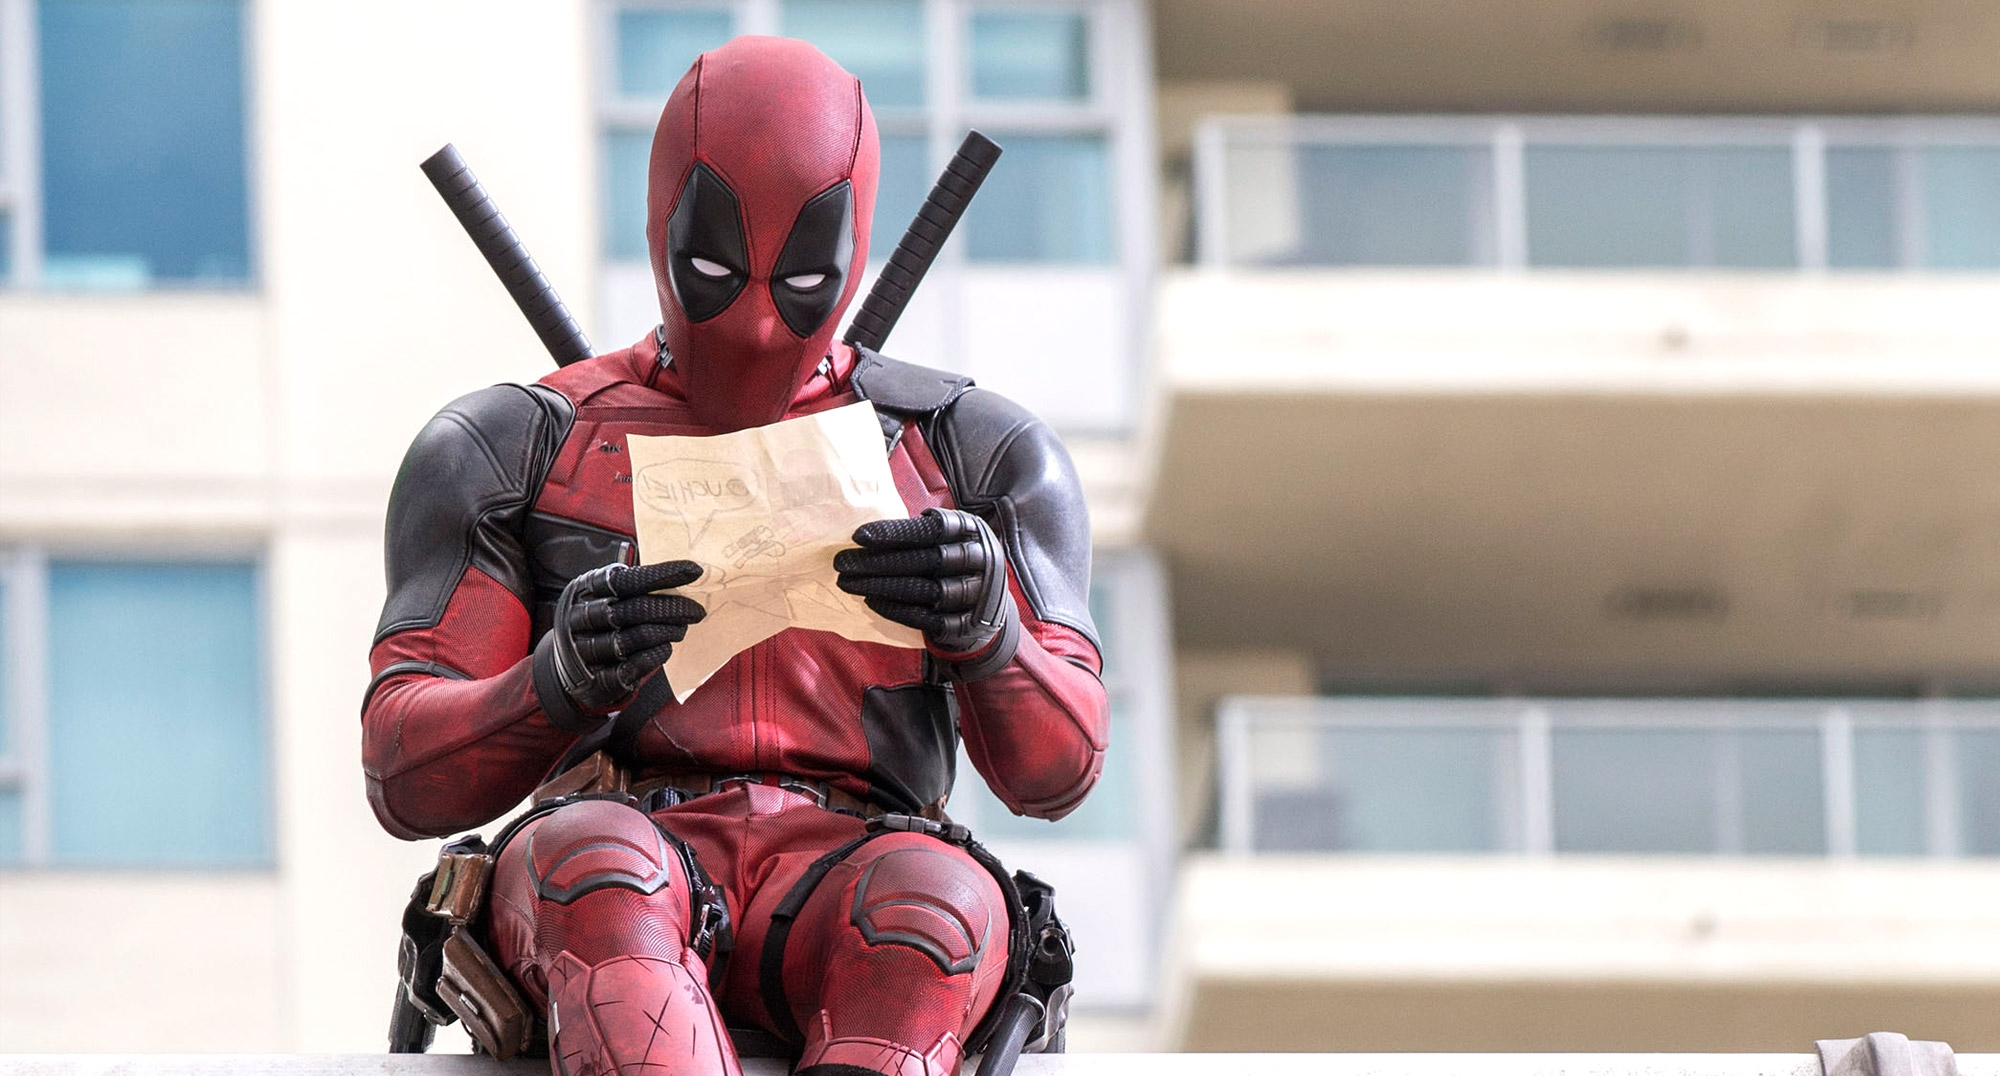 Tim Miller Explains Why He Left Deadpool 2